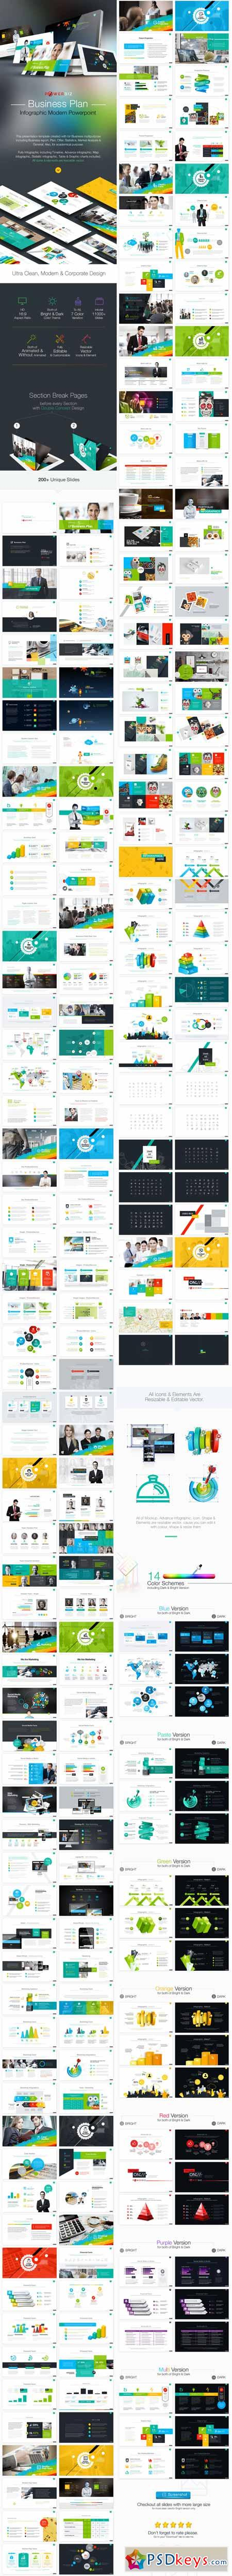 Business Plan Infographic Powerpoint 10599756